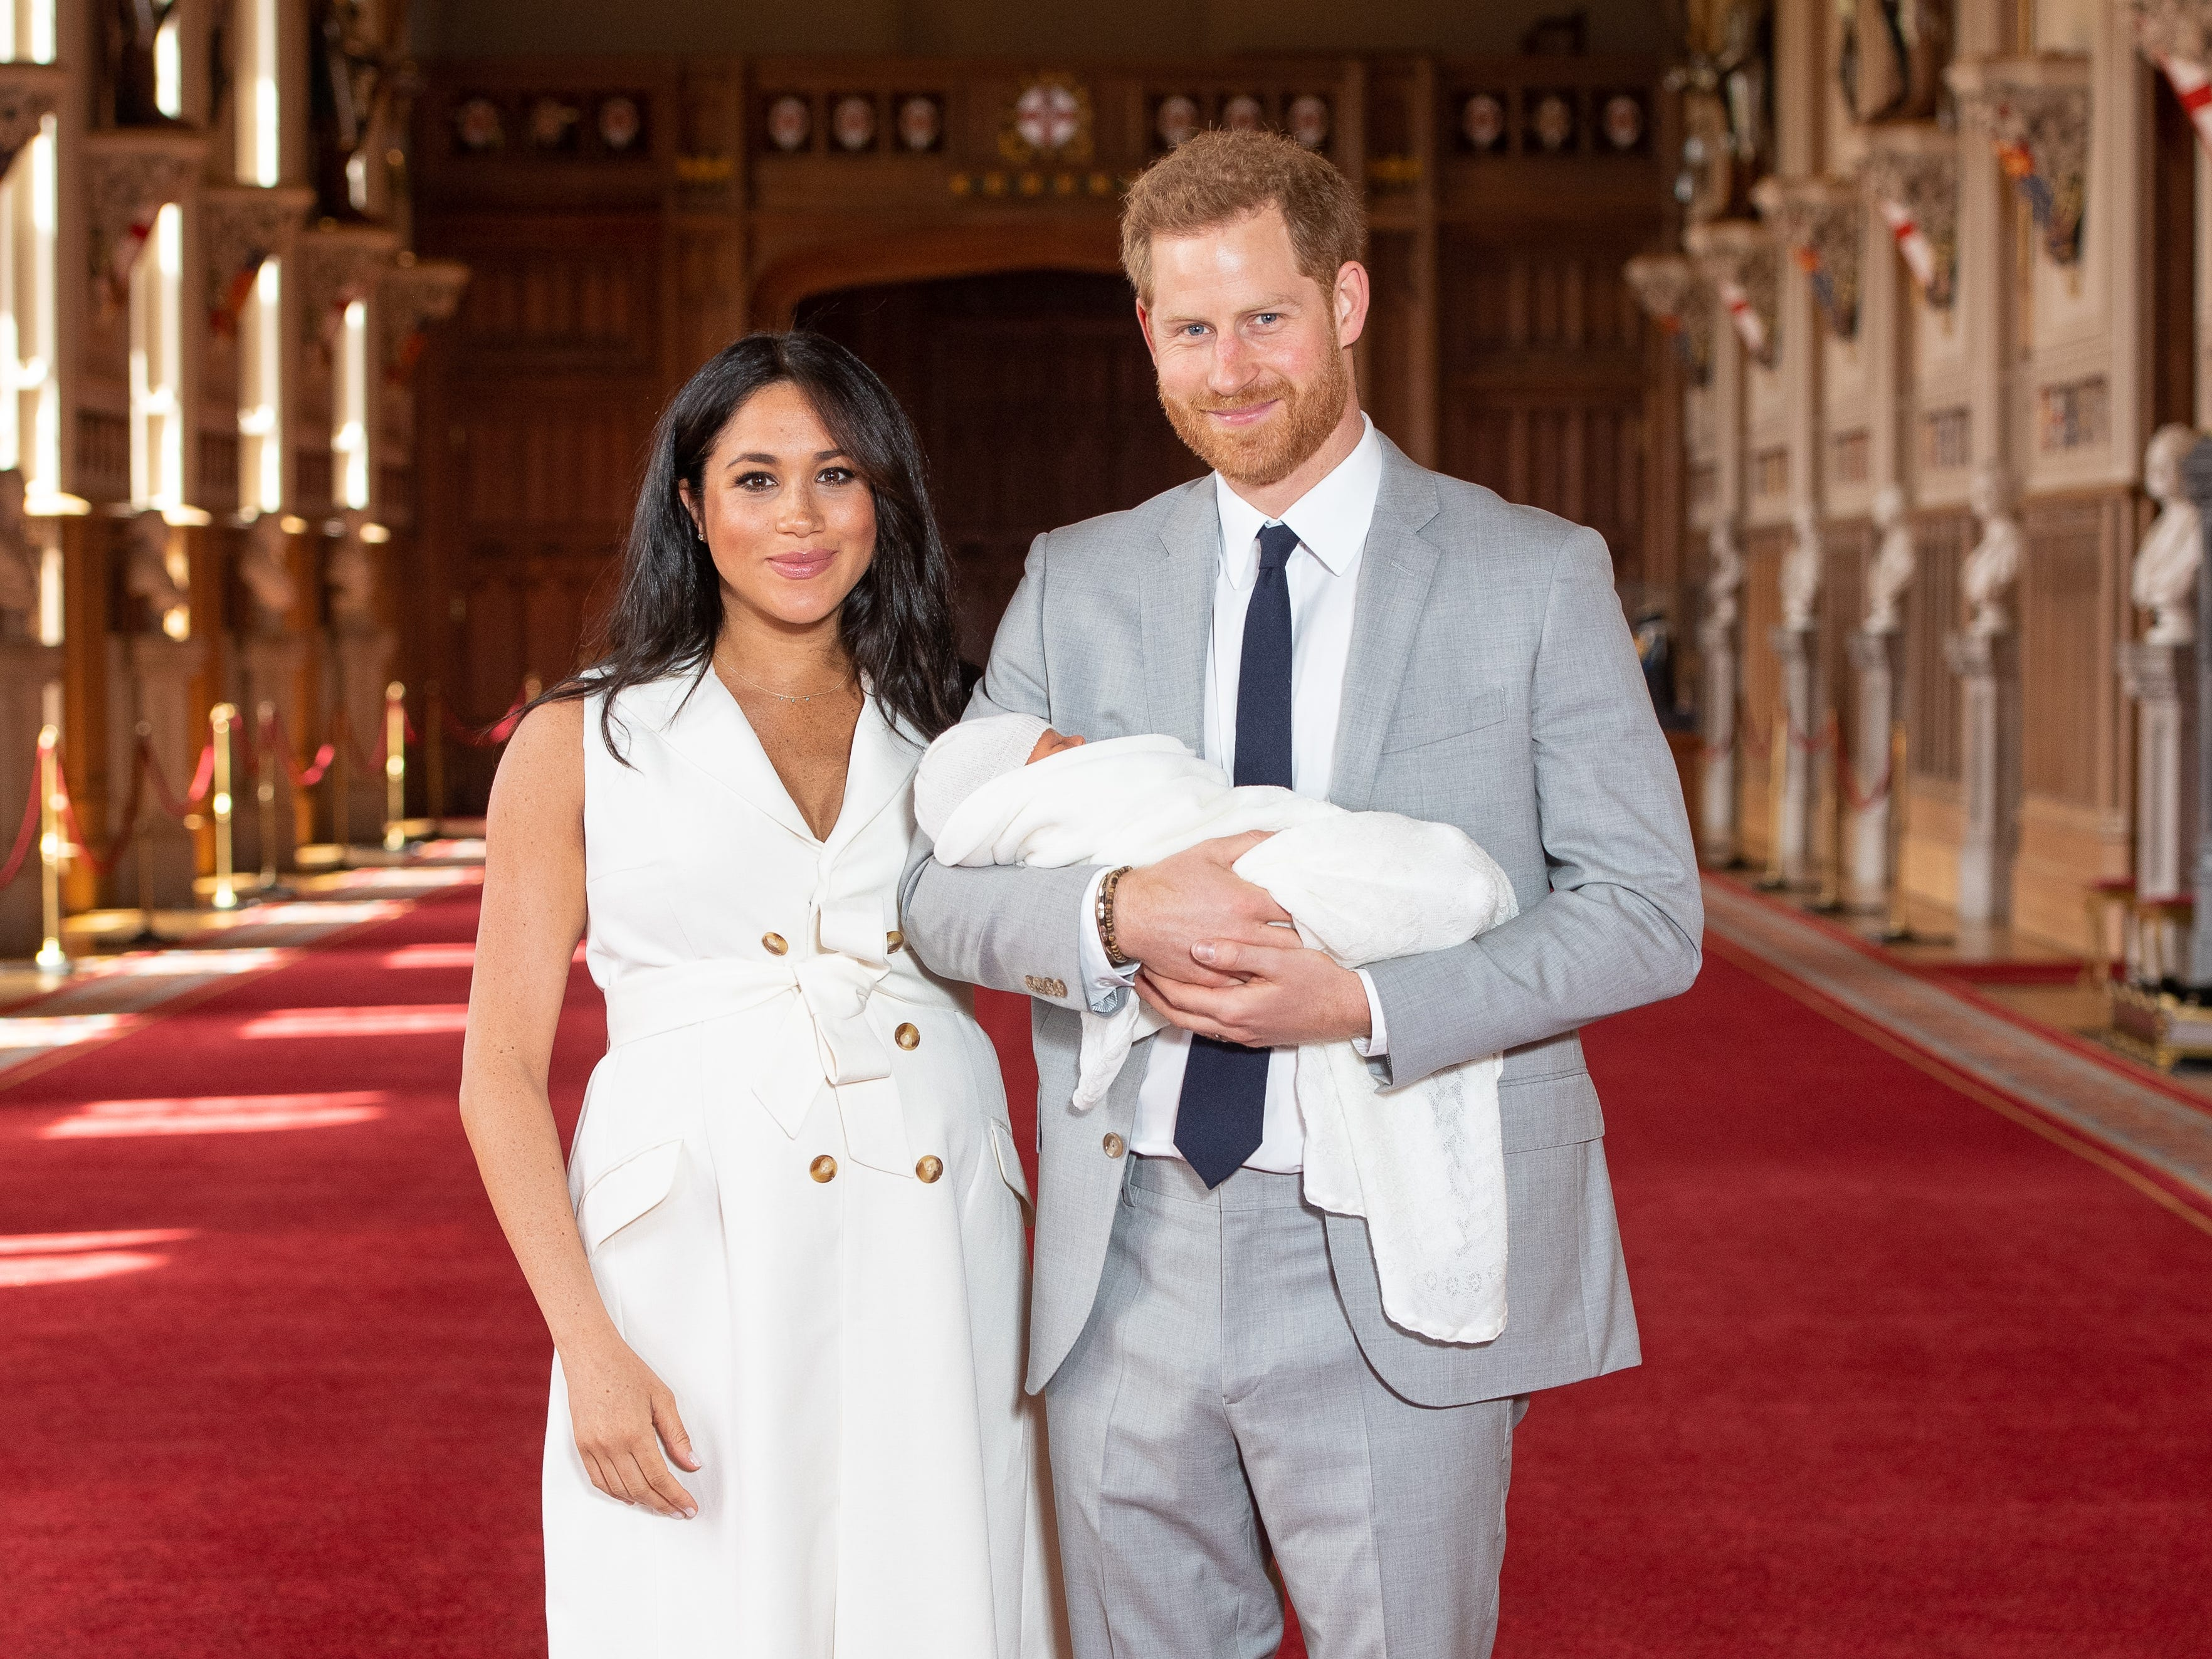 Prince Harry and Duchess Meghan of Sussex pose with their newborn son in St George's Hall at Windsor Castle on May 8, 2019.